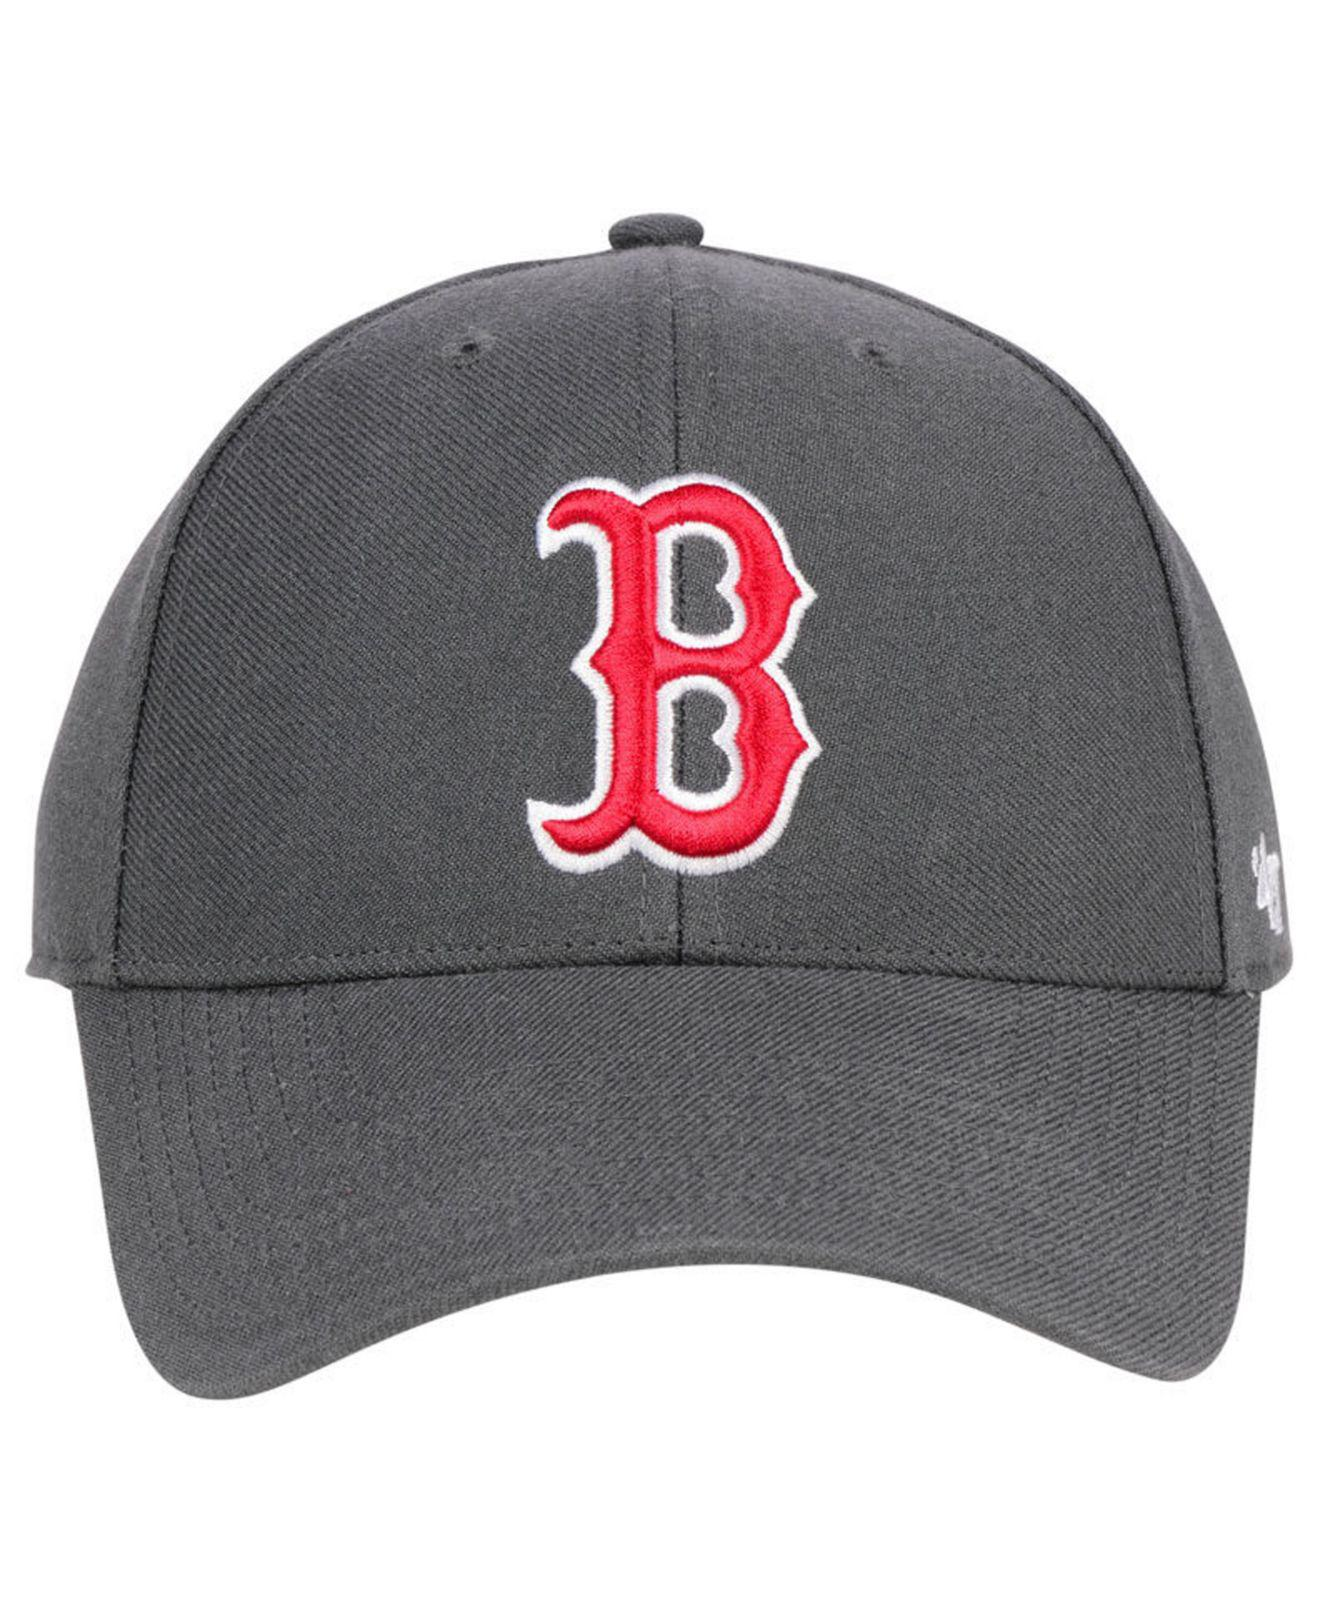 27120d5d80123 Lyst - 47 Brand Boston Red Sox Charcoal Mvp Cap in Gray for Men